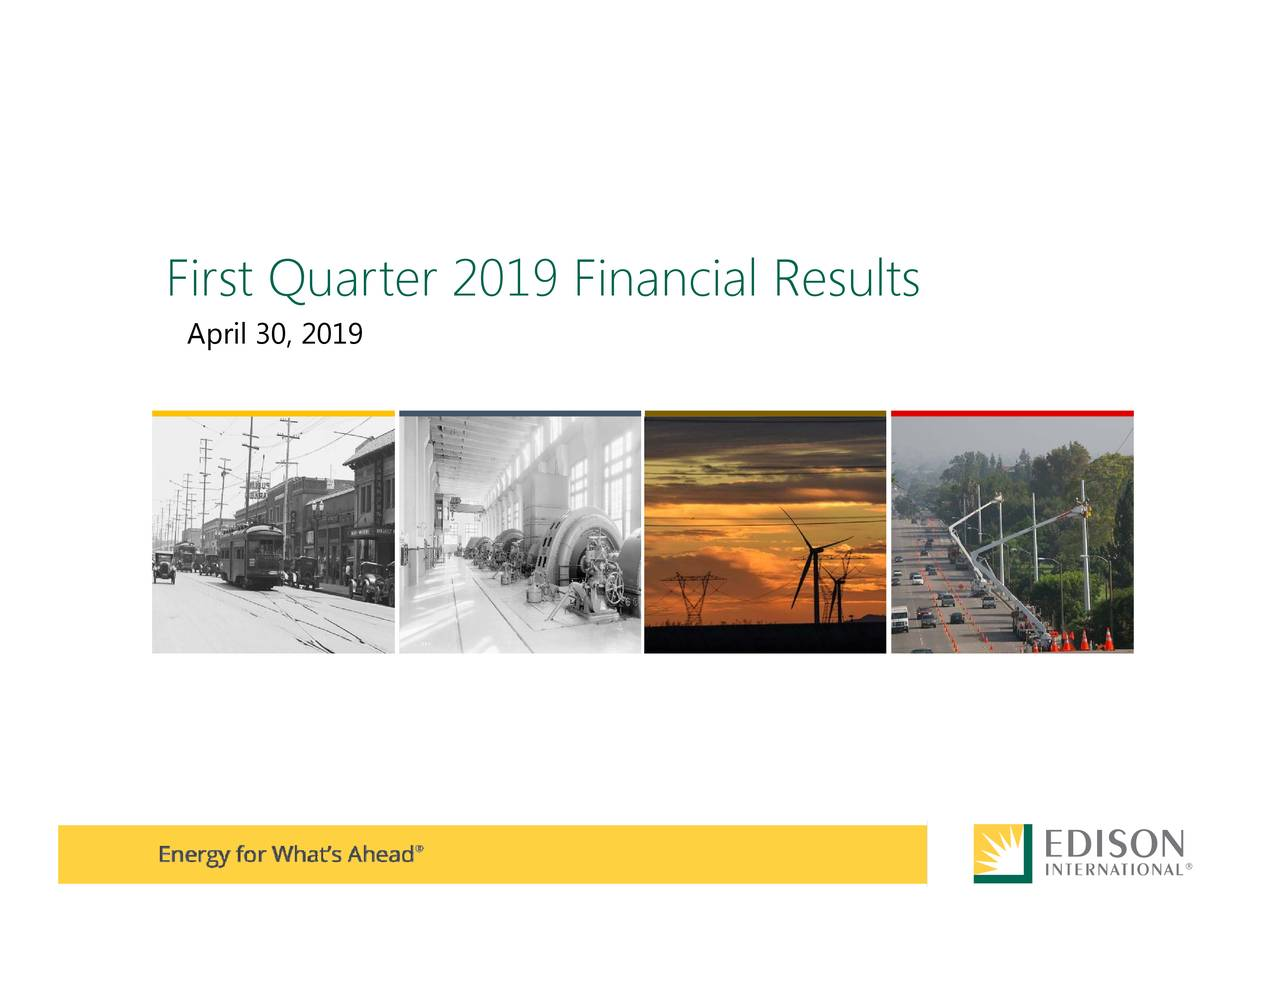 First Quarter 2019 Financial Results